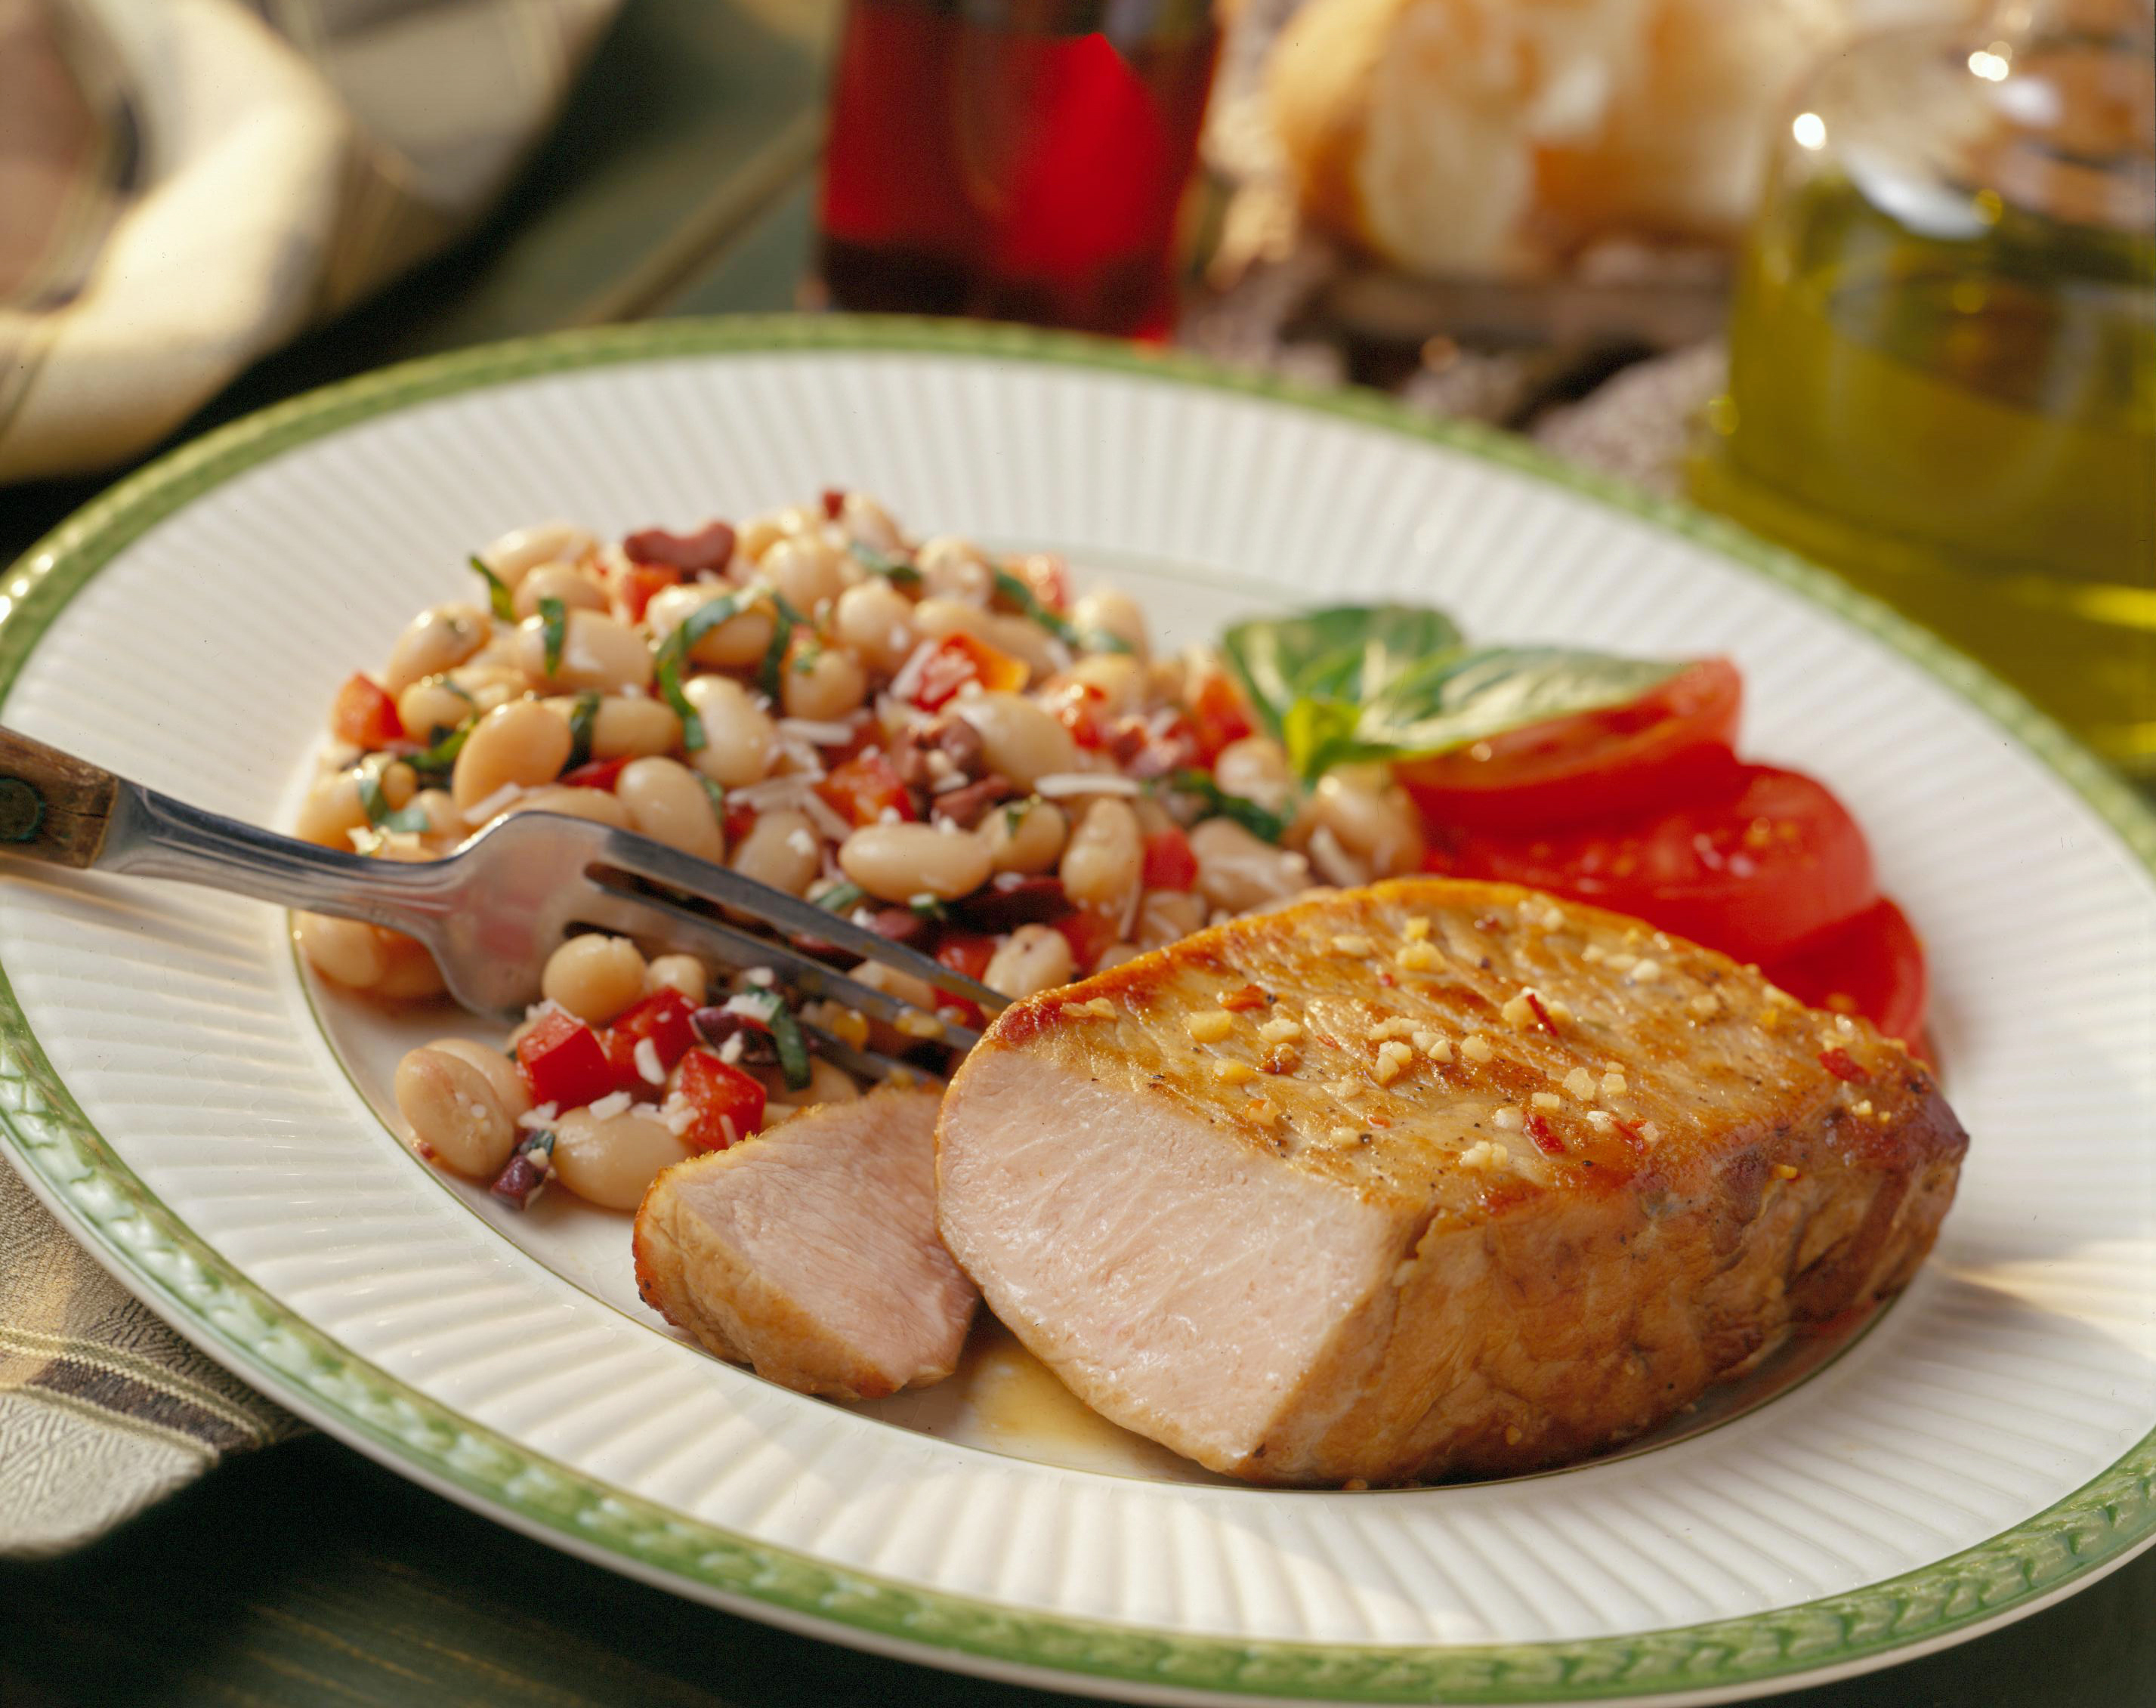 Zesty Italian Pork Chops with Cannellini Salad